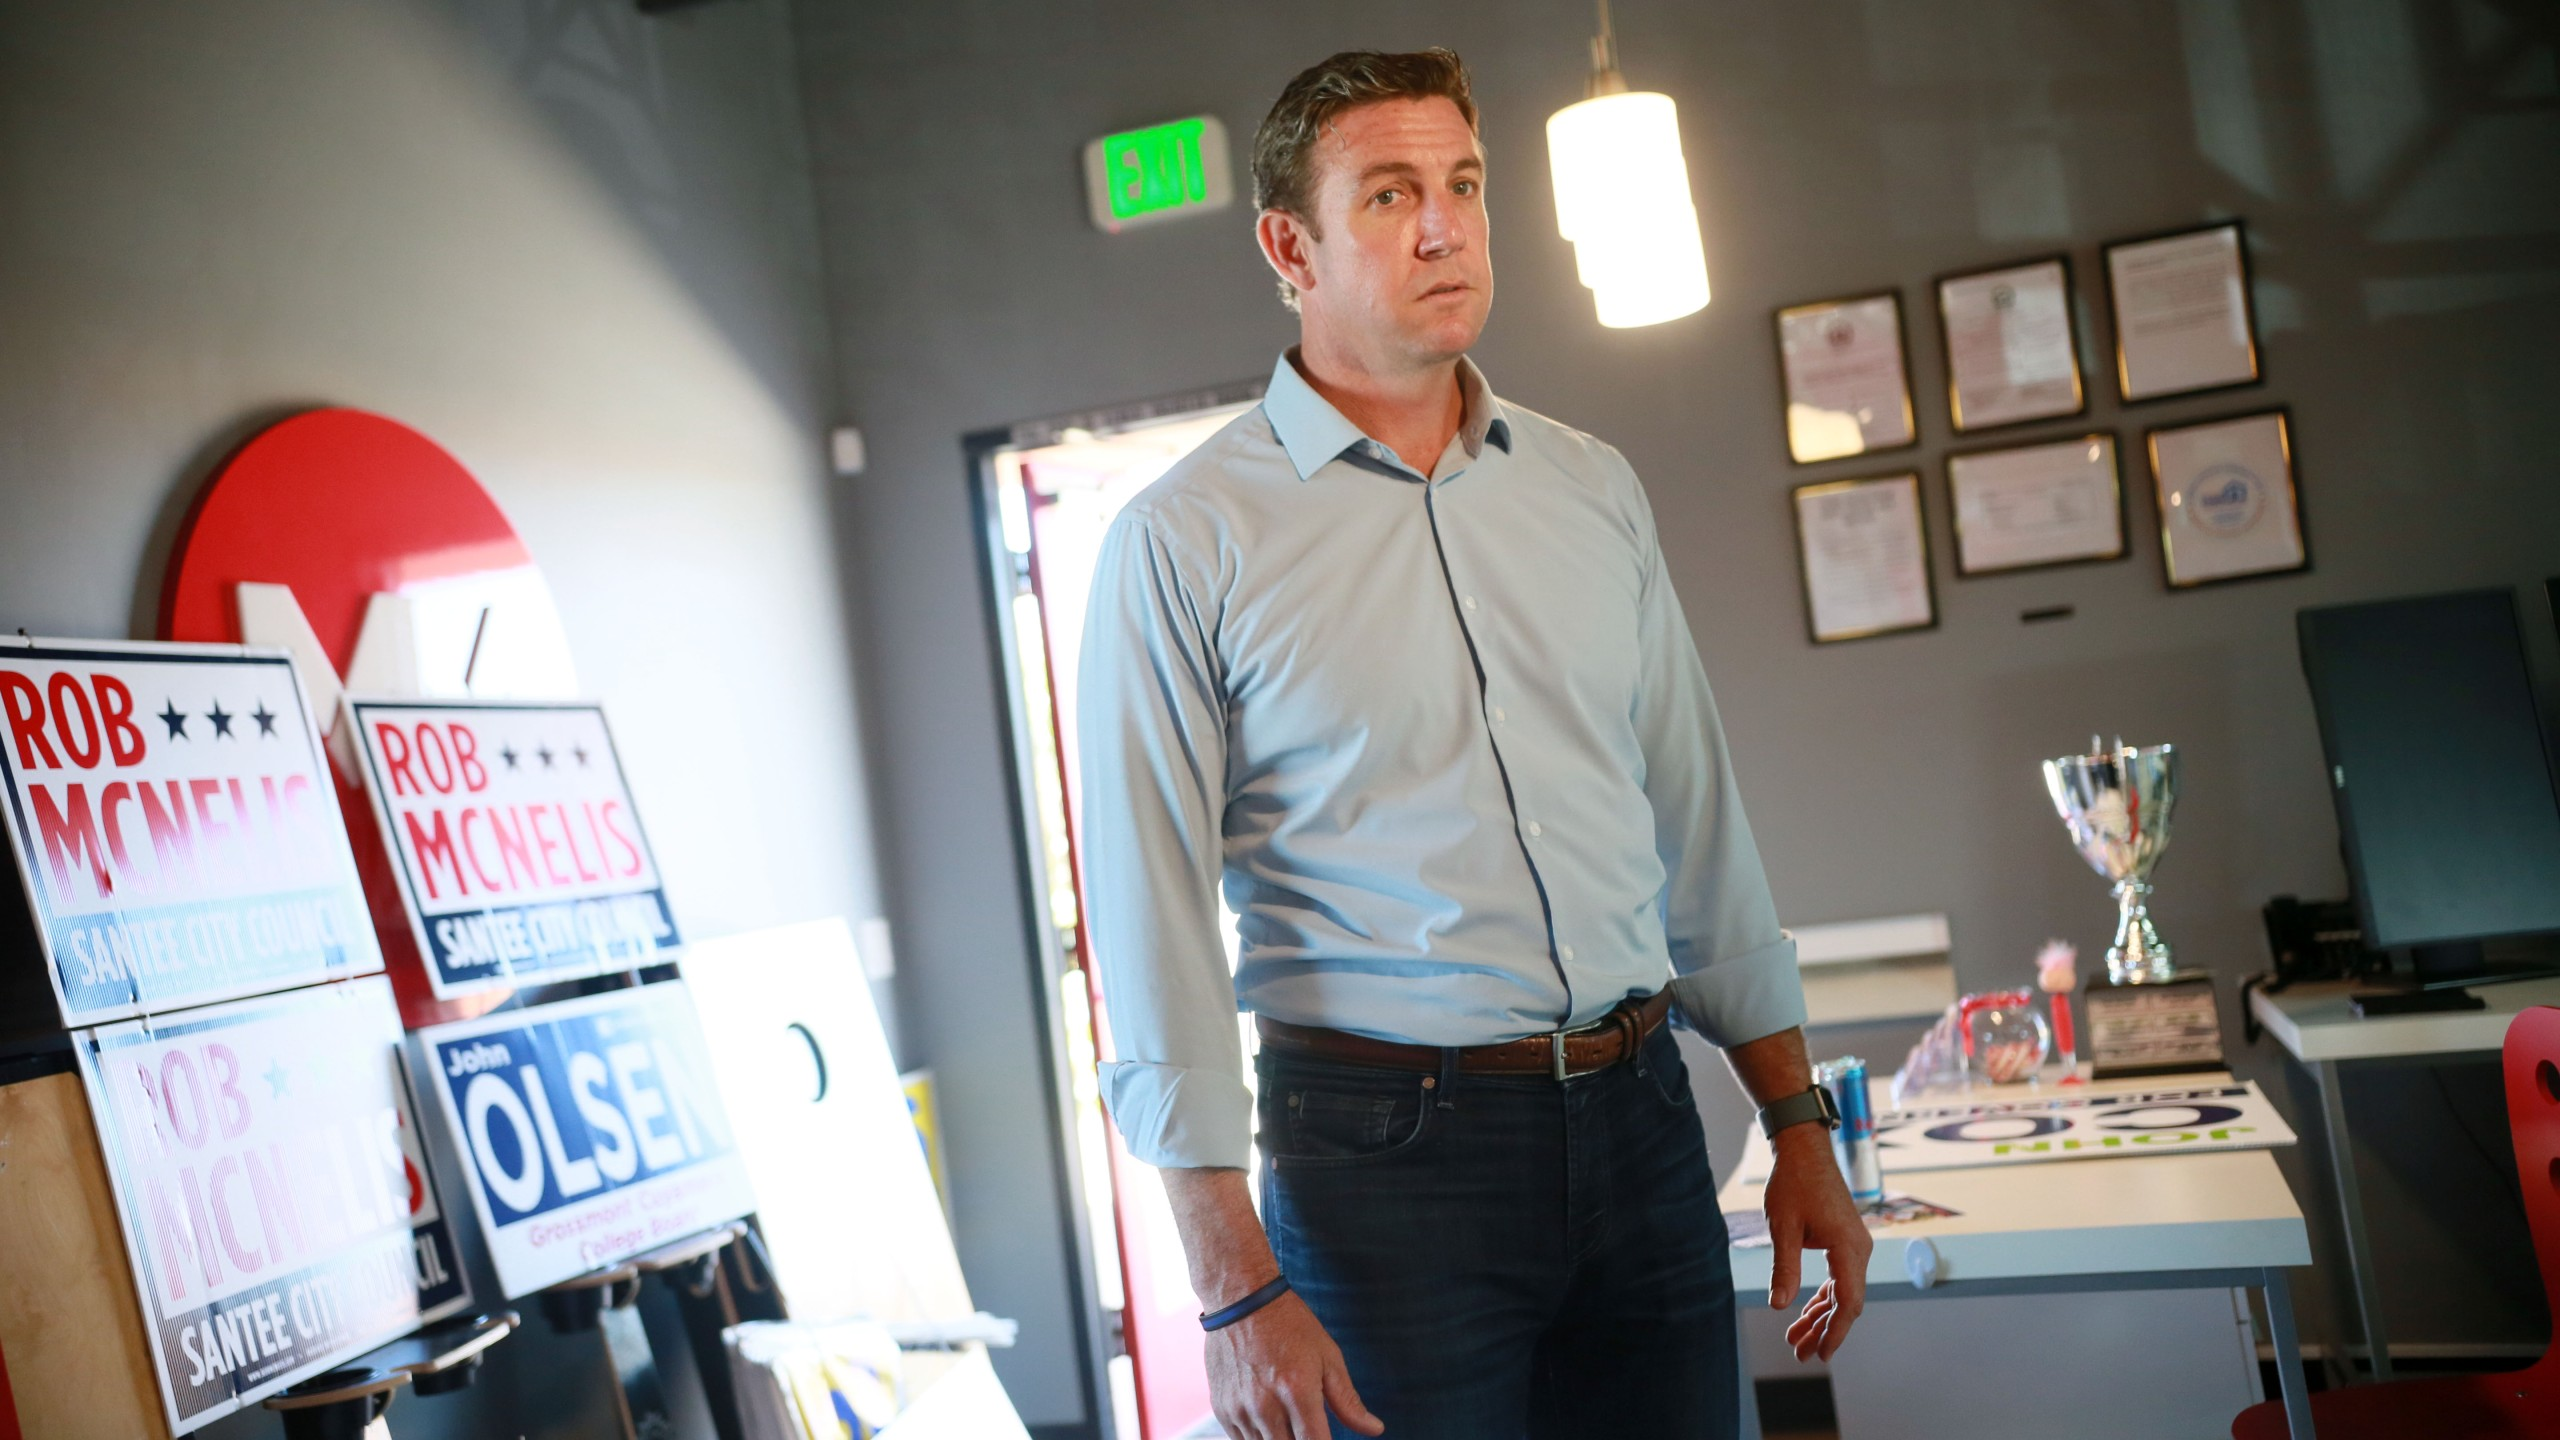 Rep. Duncan Hunter (R-CA) visits campaign staffers at one of his headquarters on Nov. 6, 2018 in Santee. (Credit: Sandy Huffaker/Getty Images)